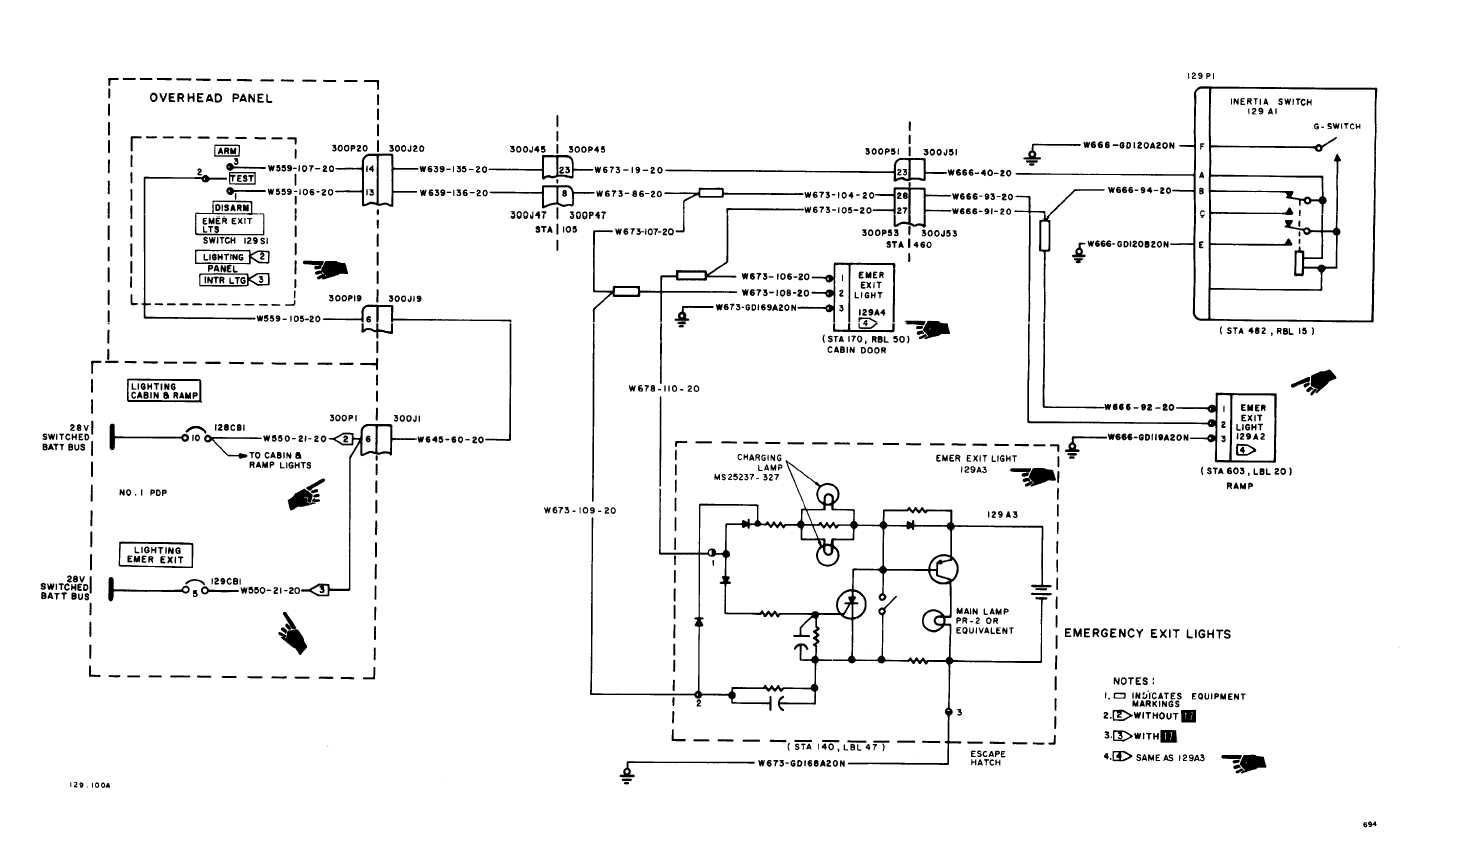 TM 55 1520 240 T 3_1054_1 emergency exit lights wiring diagram emergency exit light wiring diagram at cita.asia